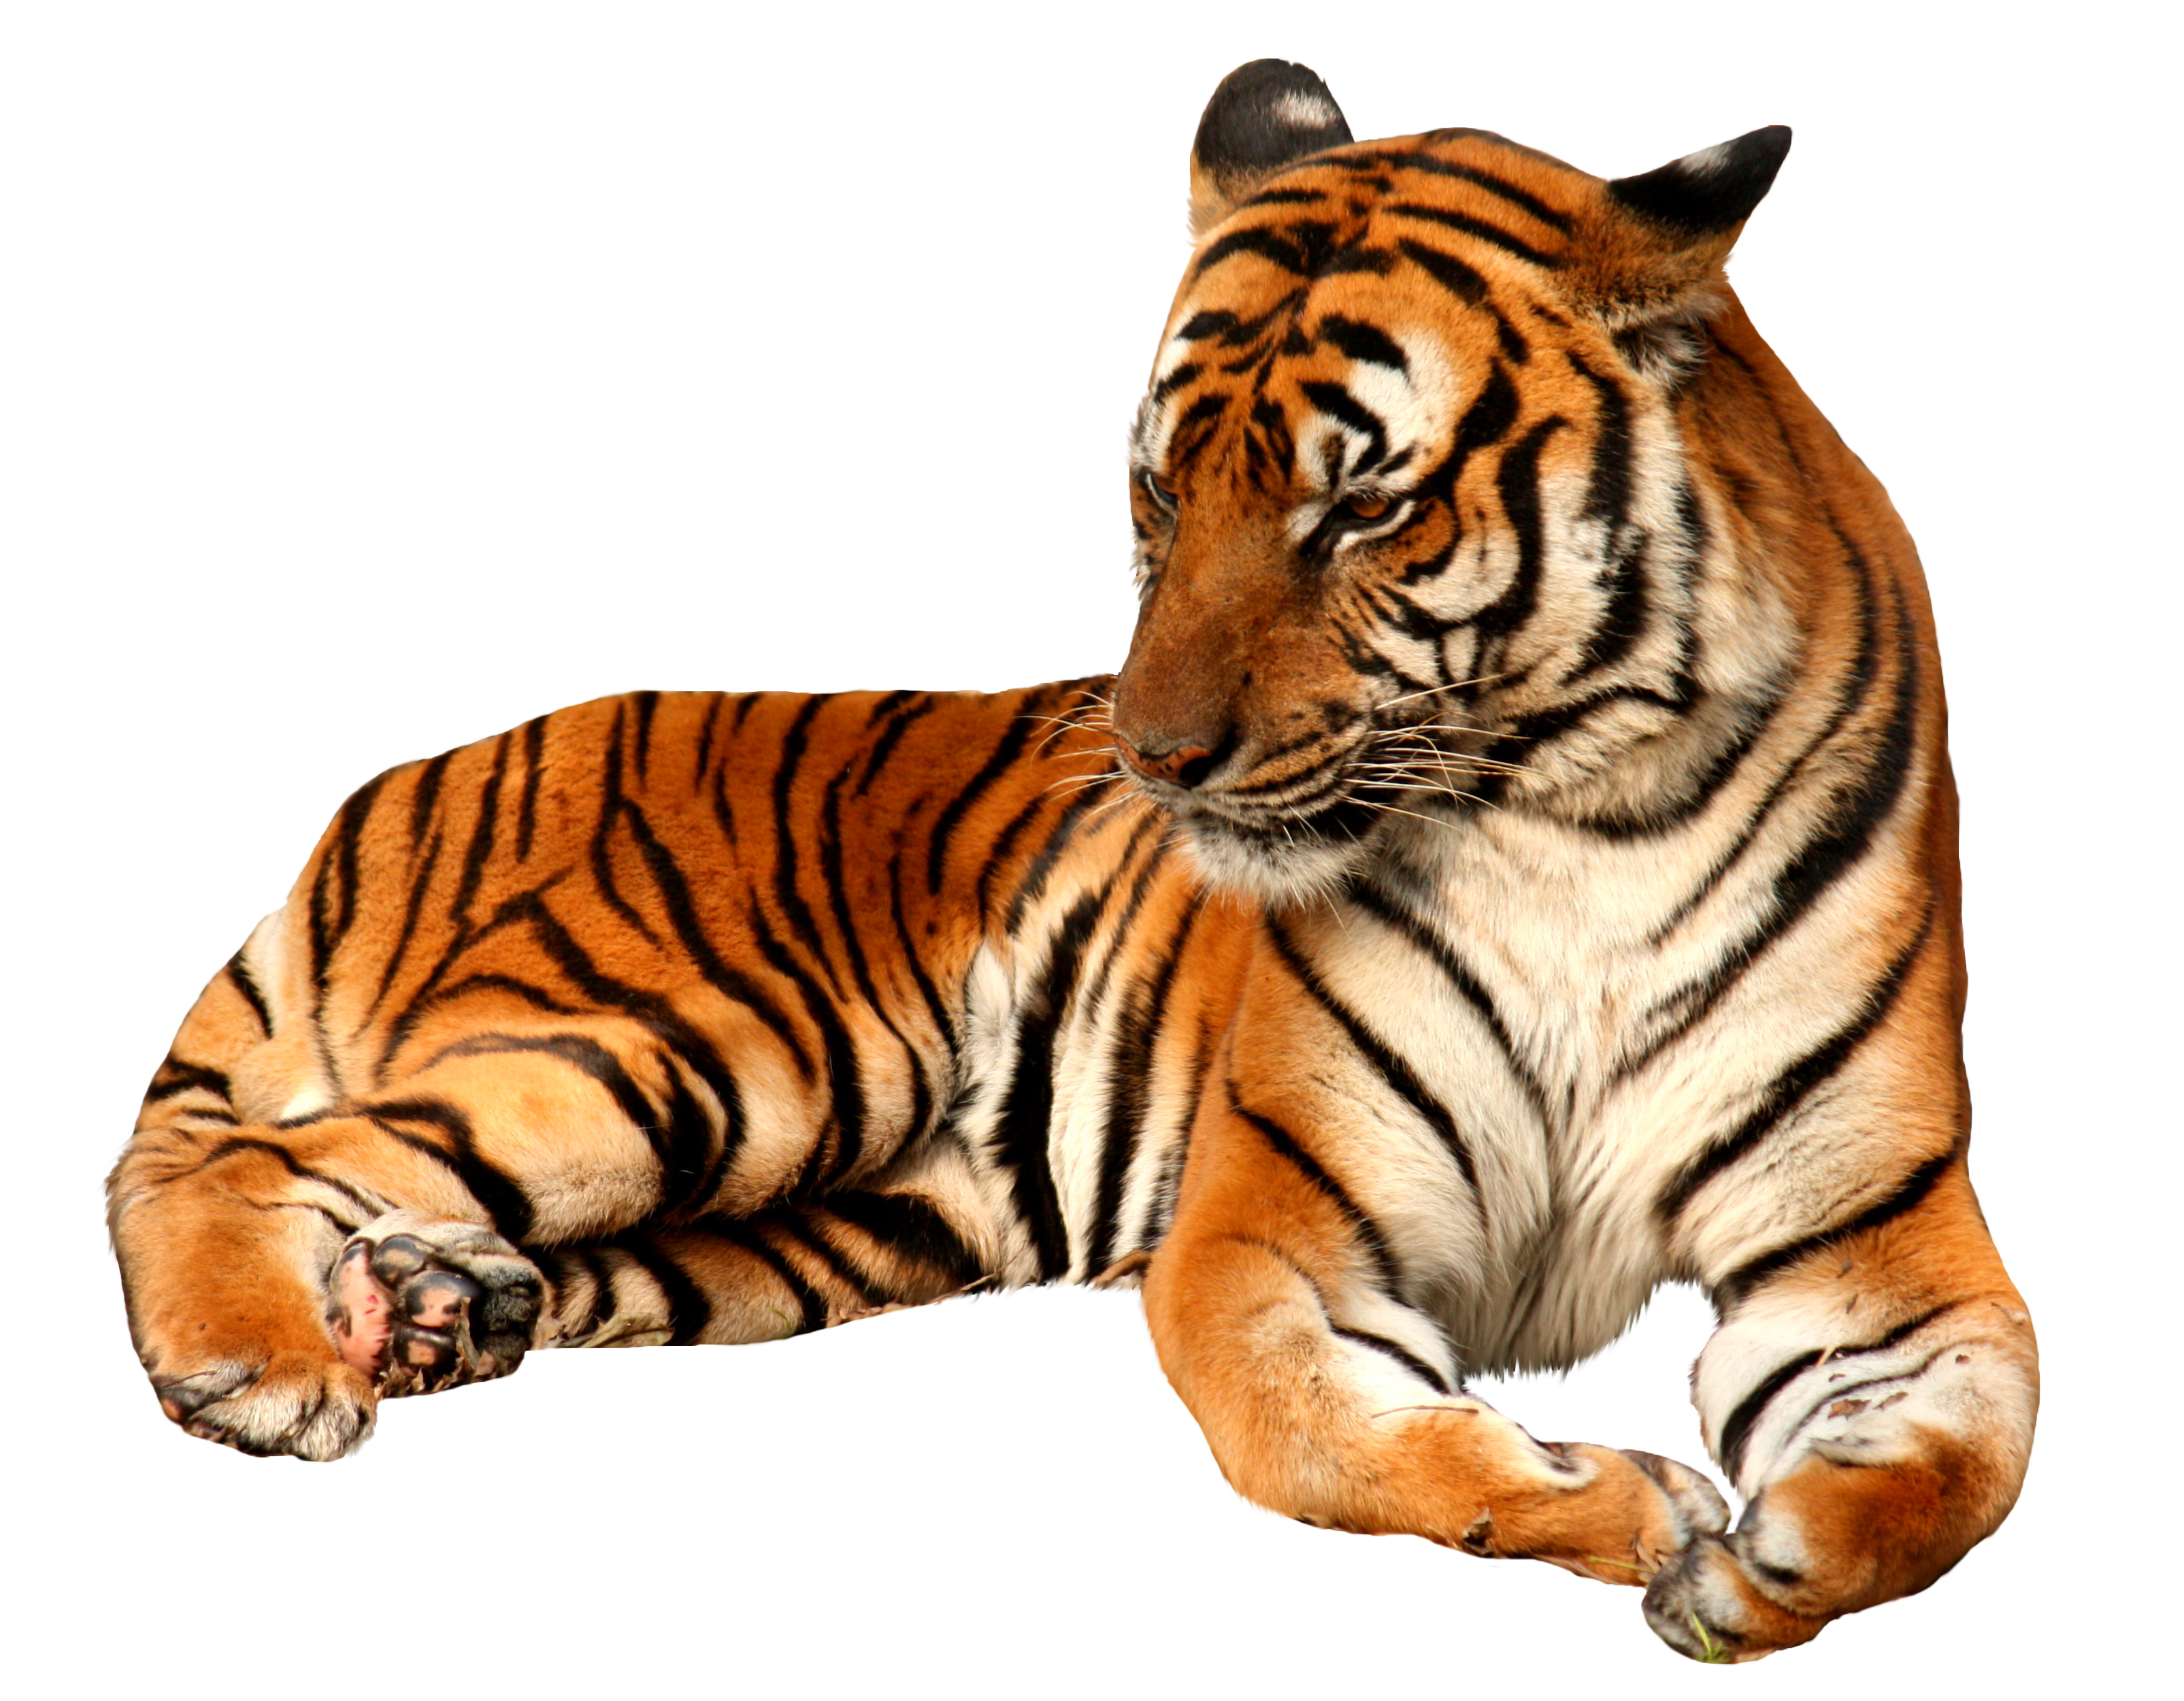 Tiger image without background. Sad animals png banner royalty free stock